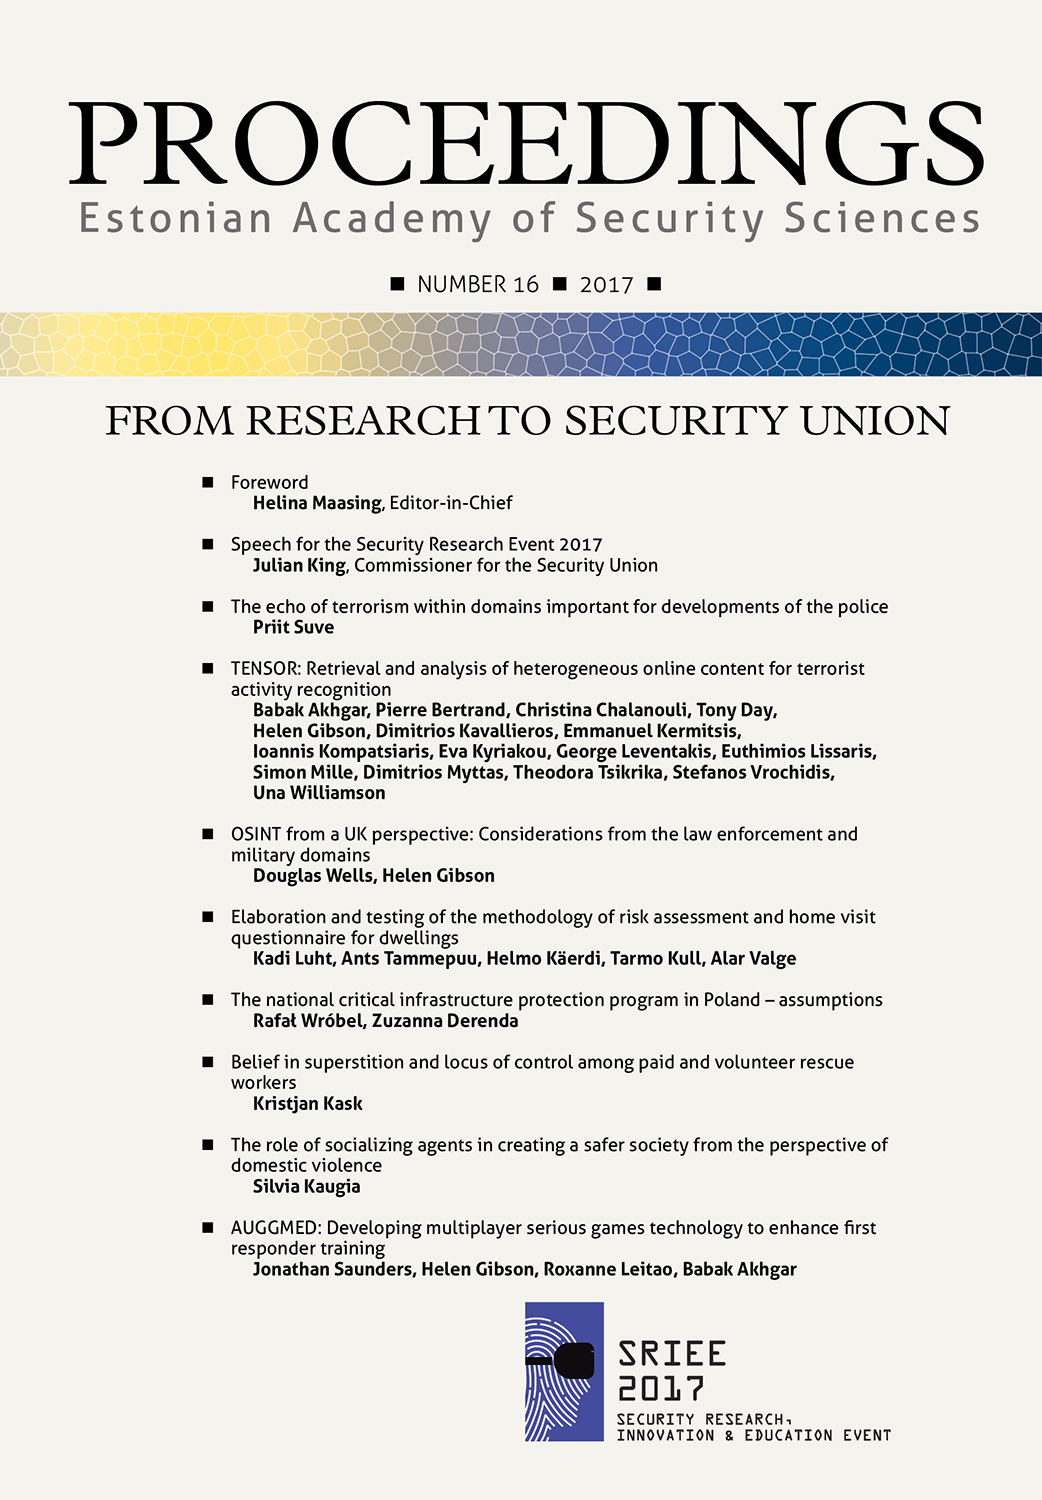 From Reasearch to Security Union